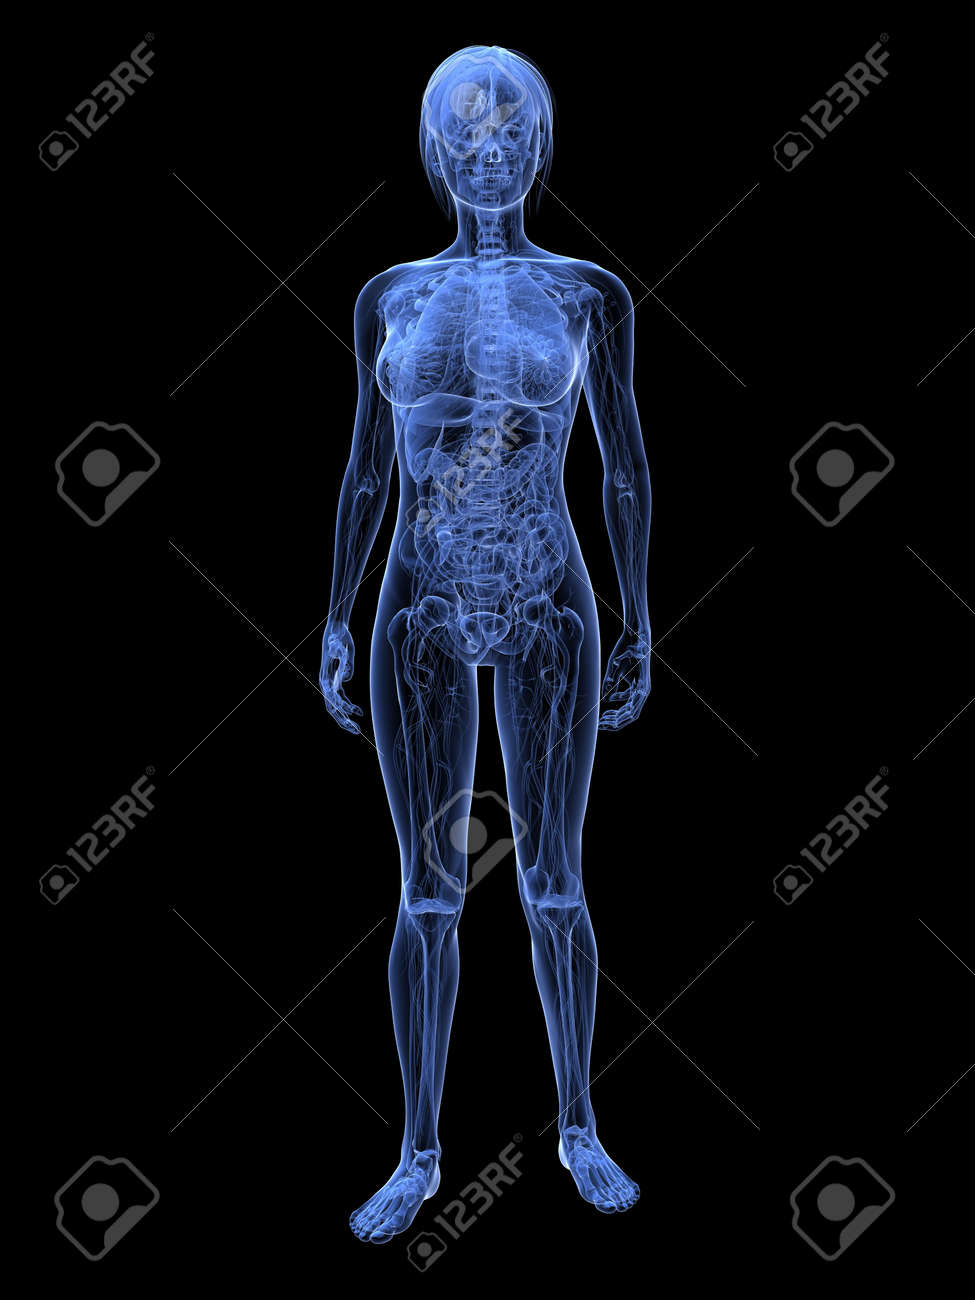 transparent female anatomy Stock Photo - 6359843